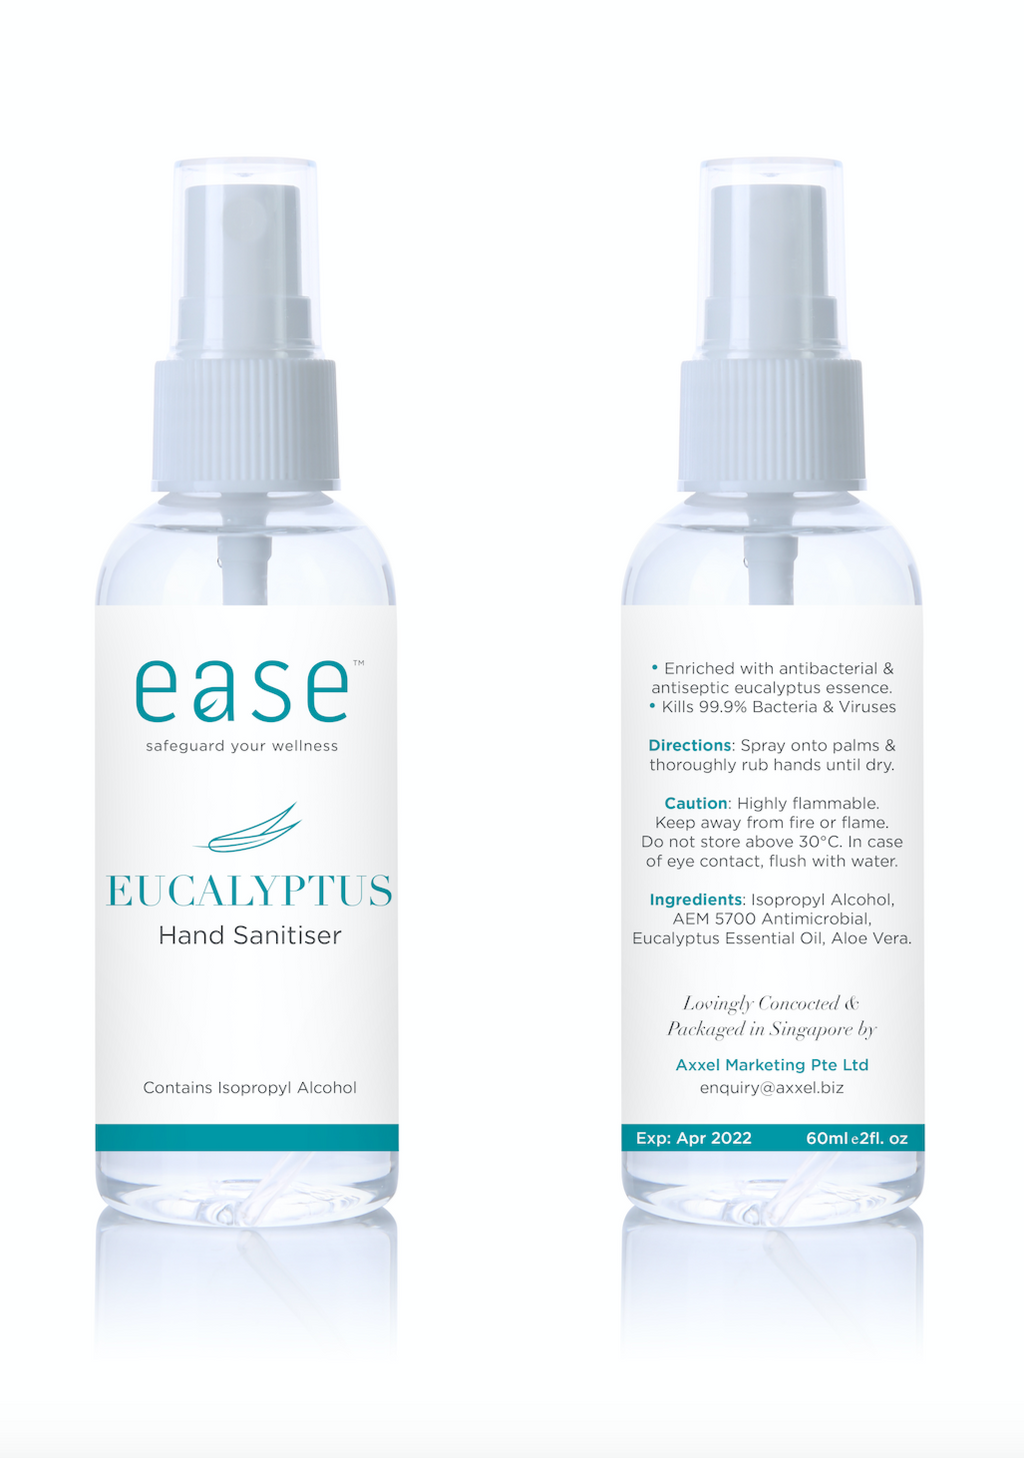 EASE Set of 3 Eucalyptus Hand Sanitizers - This Is For Him